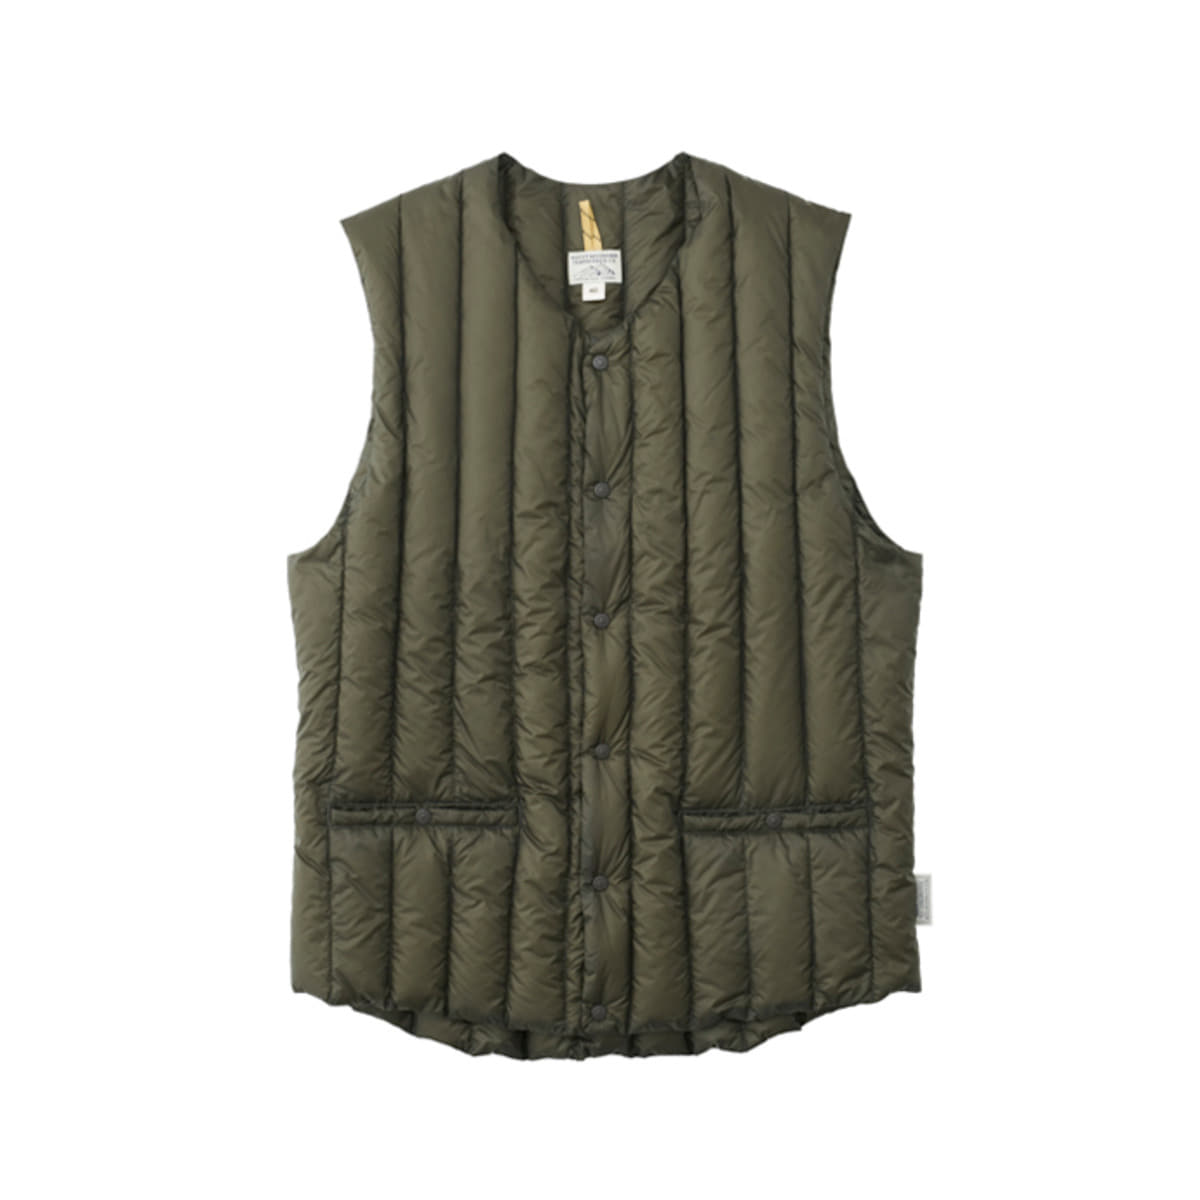 [ROCKY MOUNTAIN] SIX MONTH VEST 'OLIVE'